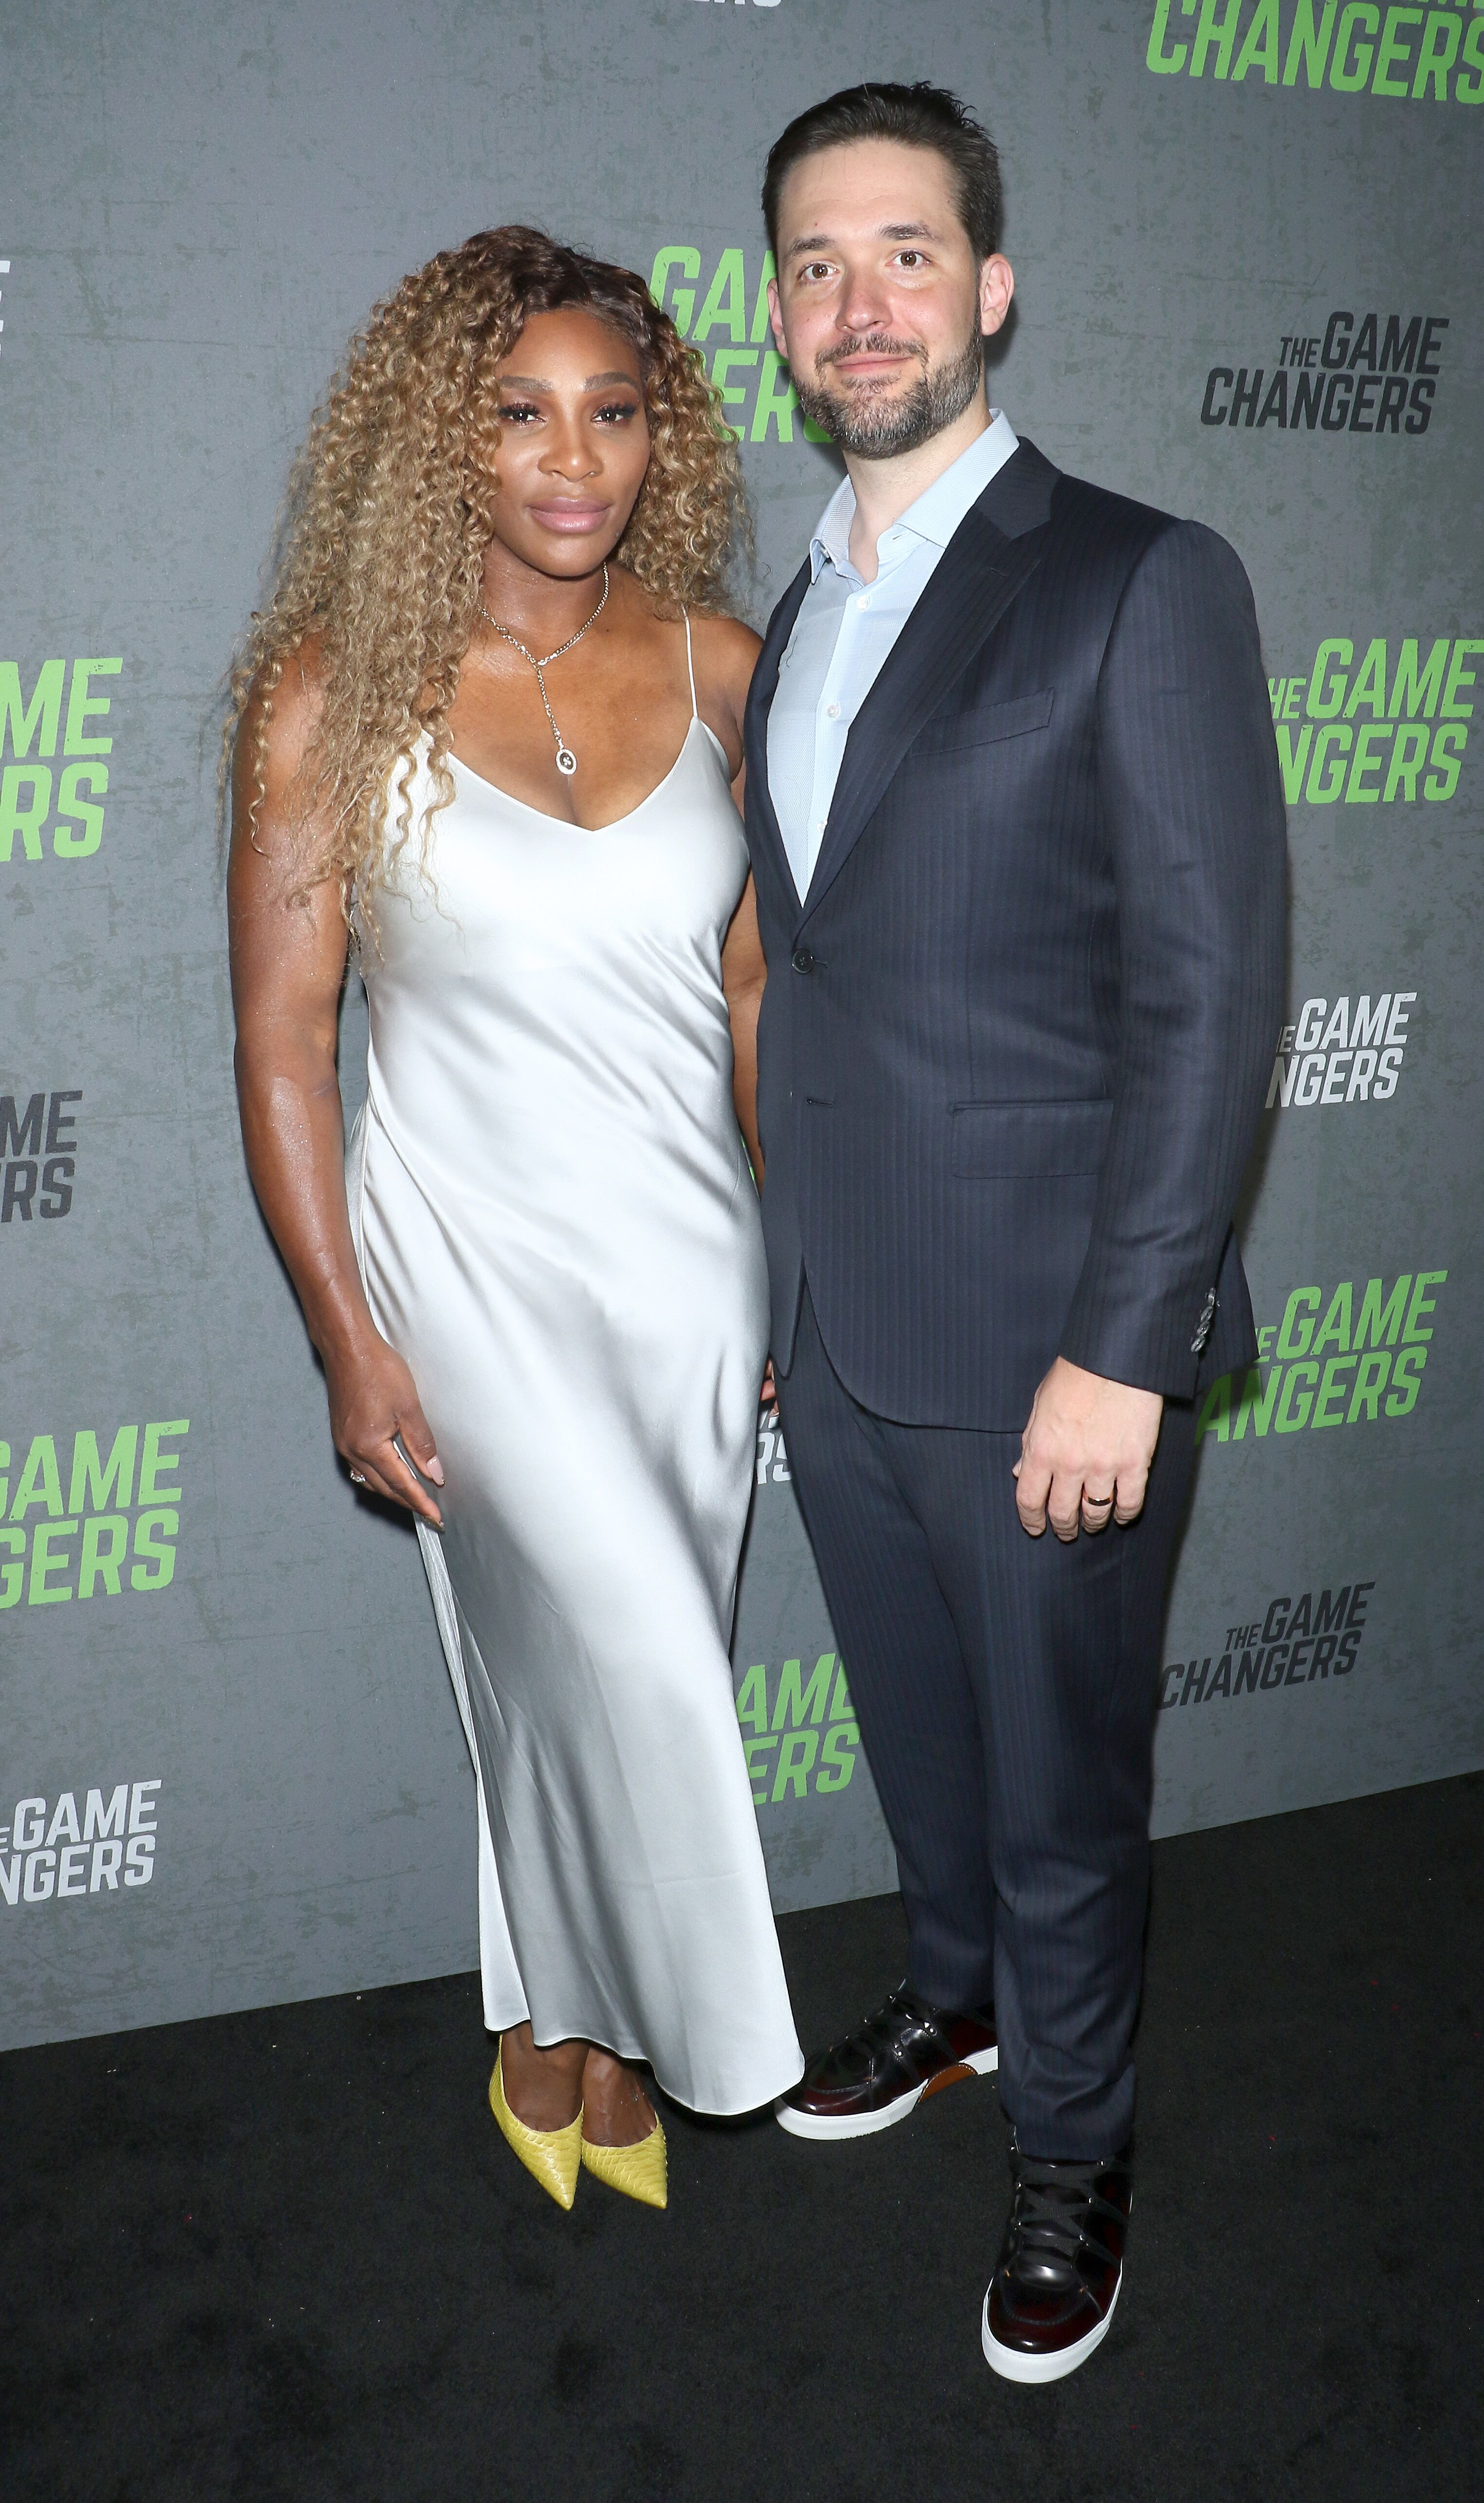 """Serena Williams and husband Alexis Ohanian at """"The Game Changers"""" event/ Source: Getty Images"""